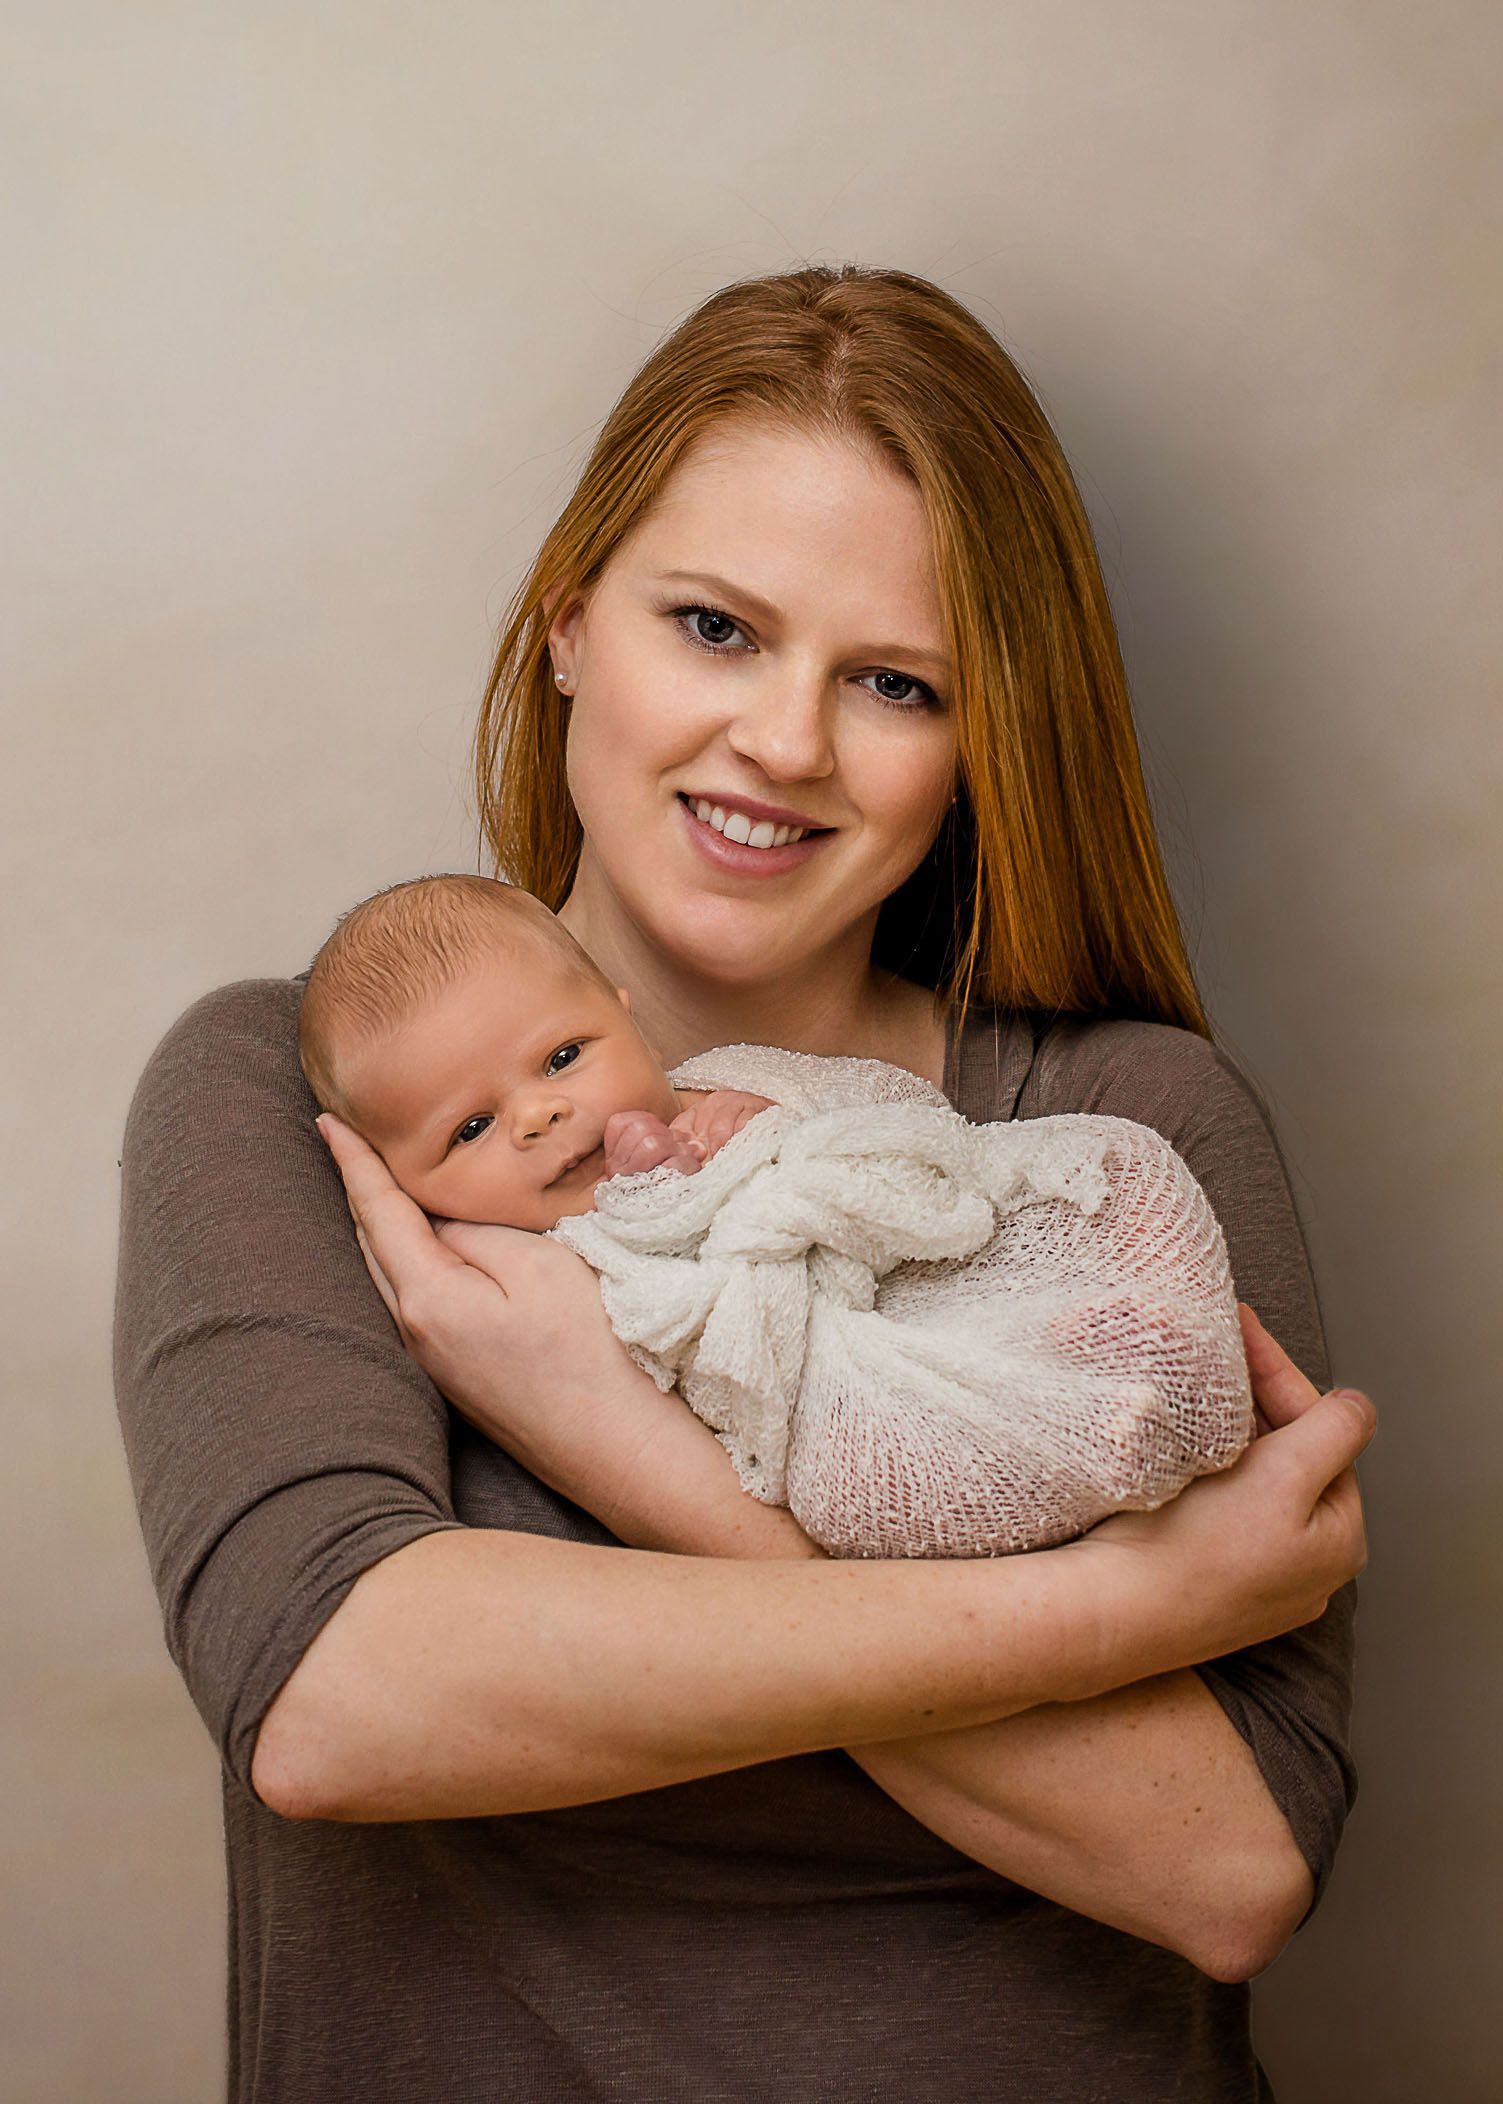 Red haired mom holding baby girl wrapped in her arms